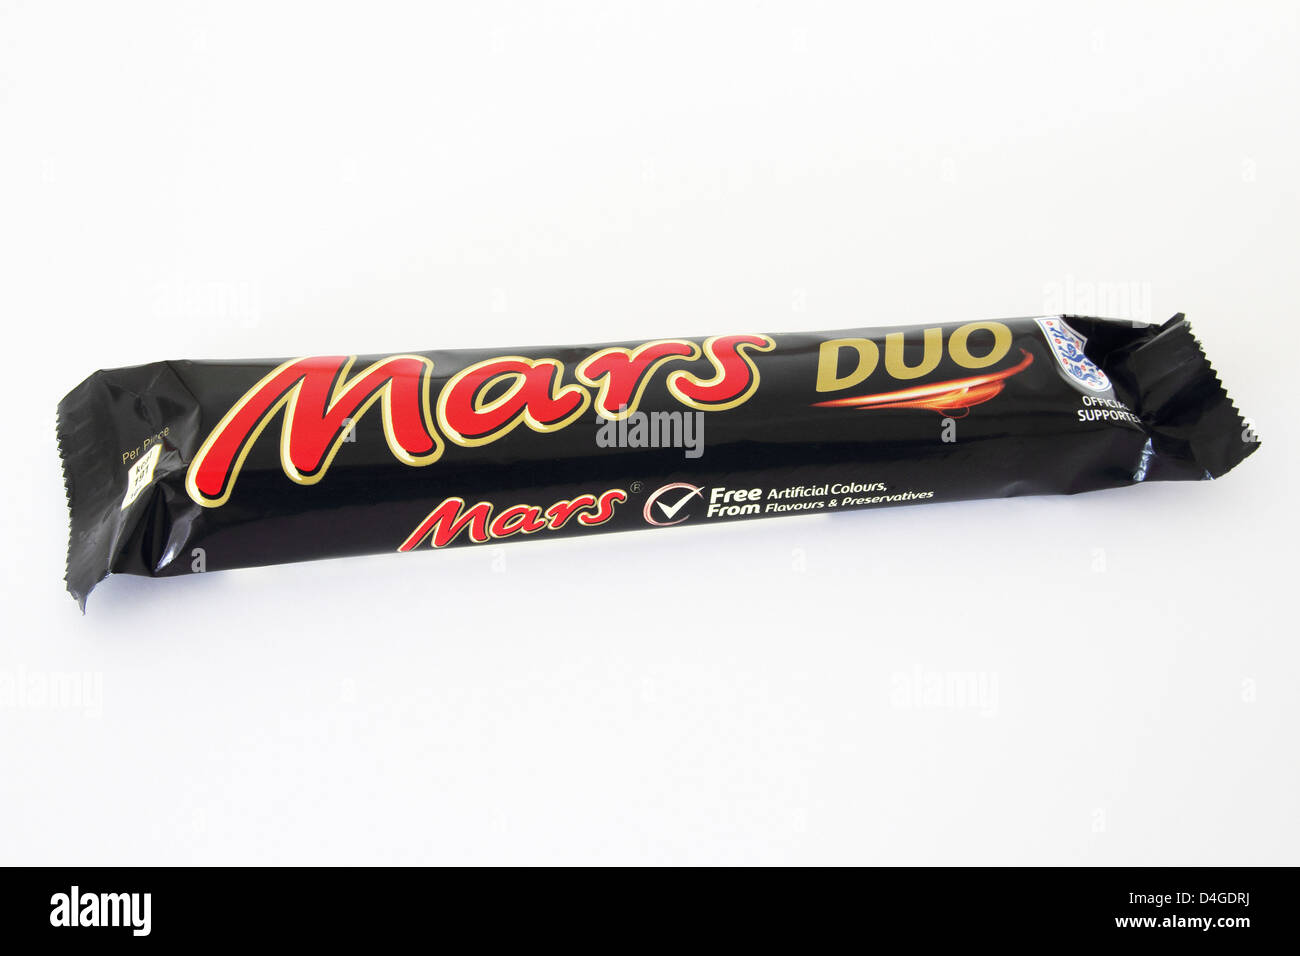 Mars Duo Chocolate Bar on a White Background - Stock Image